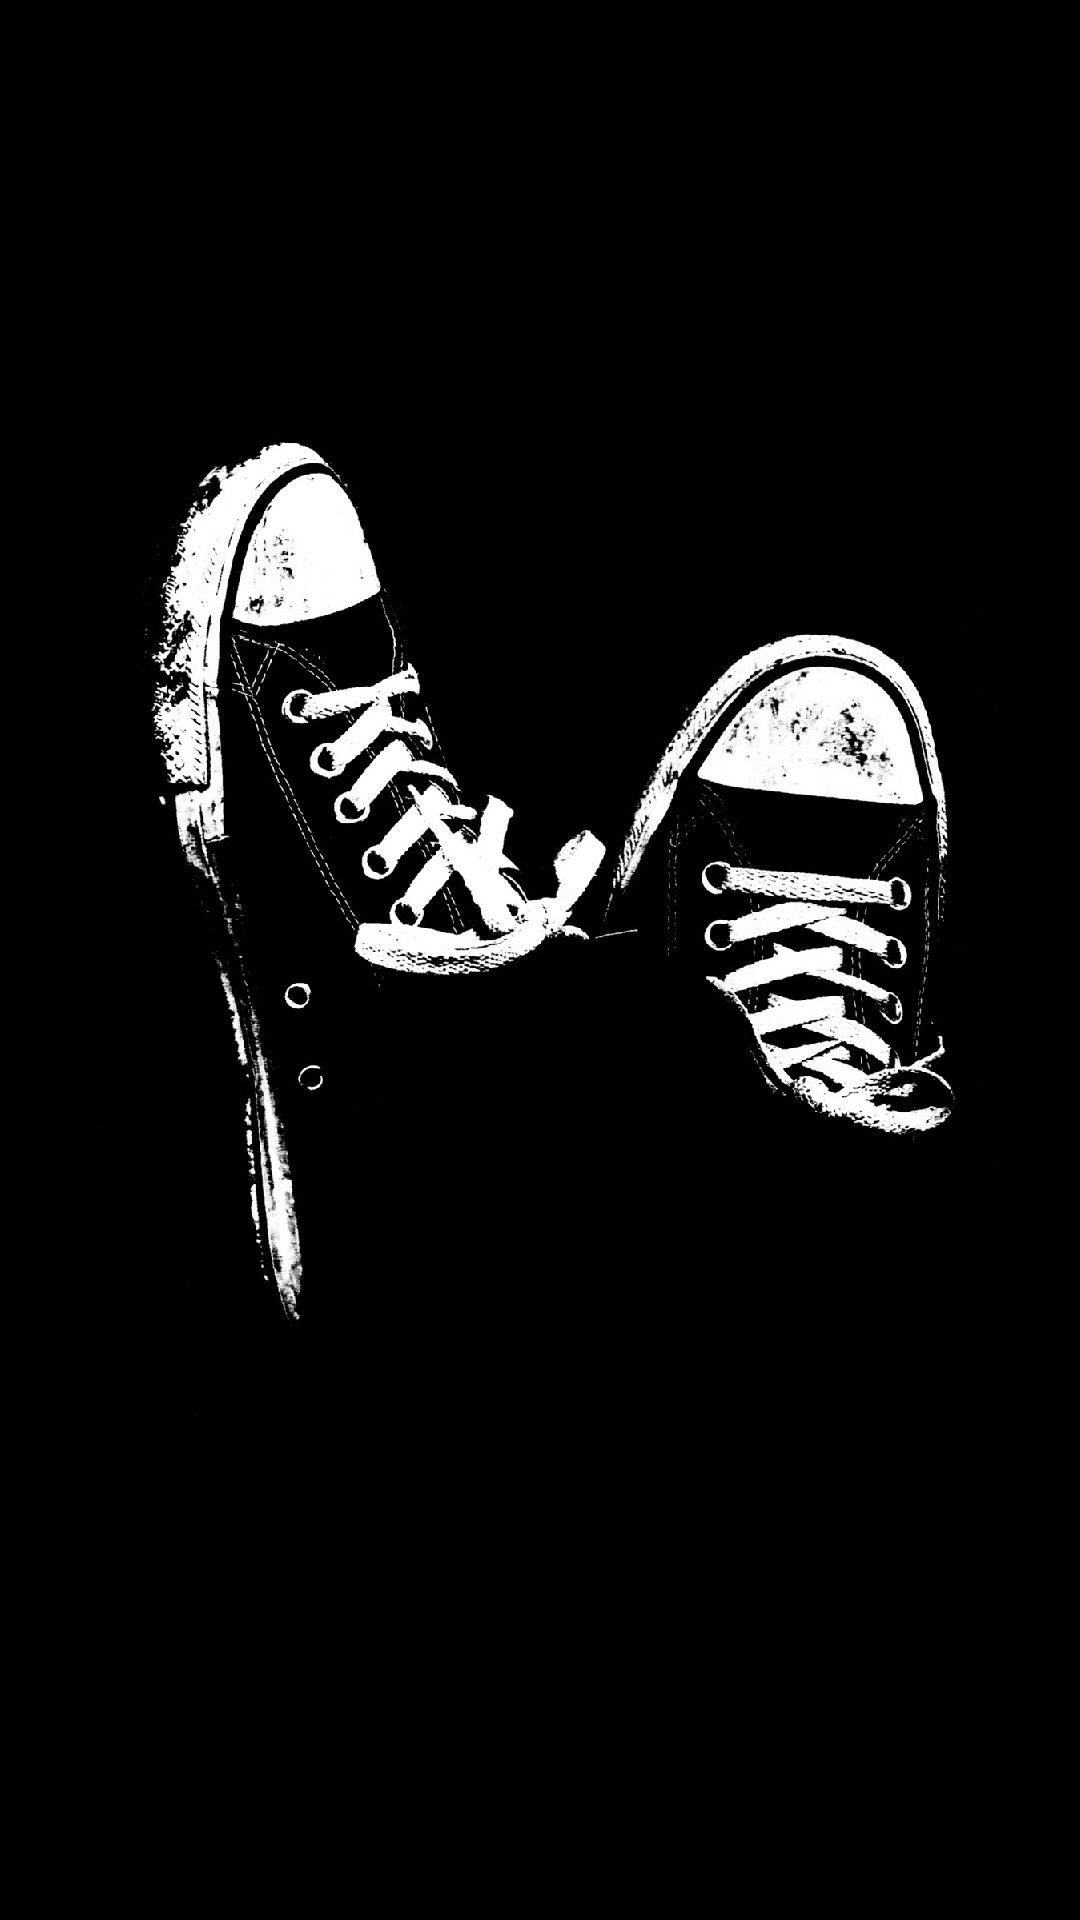 Iphone wallpaper converse all star iphone branco unique iphone wallpaper simple wallpapers dark